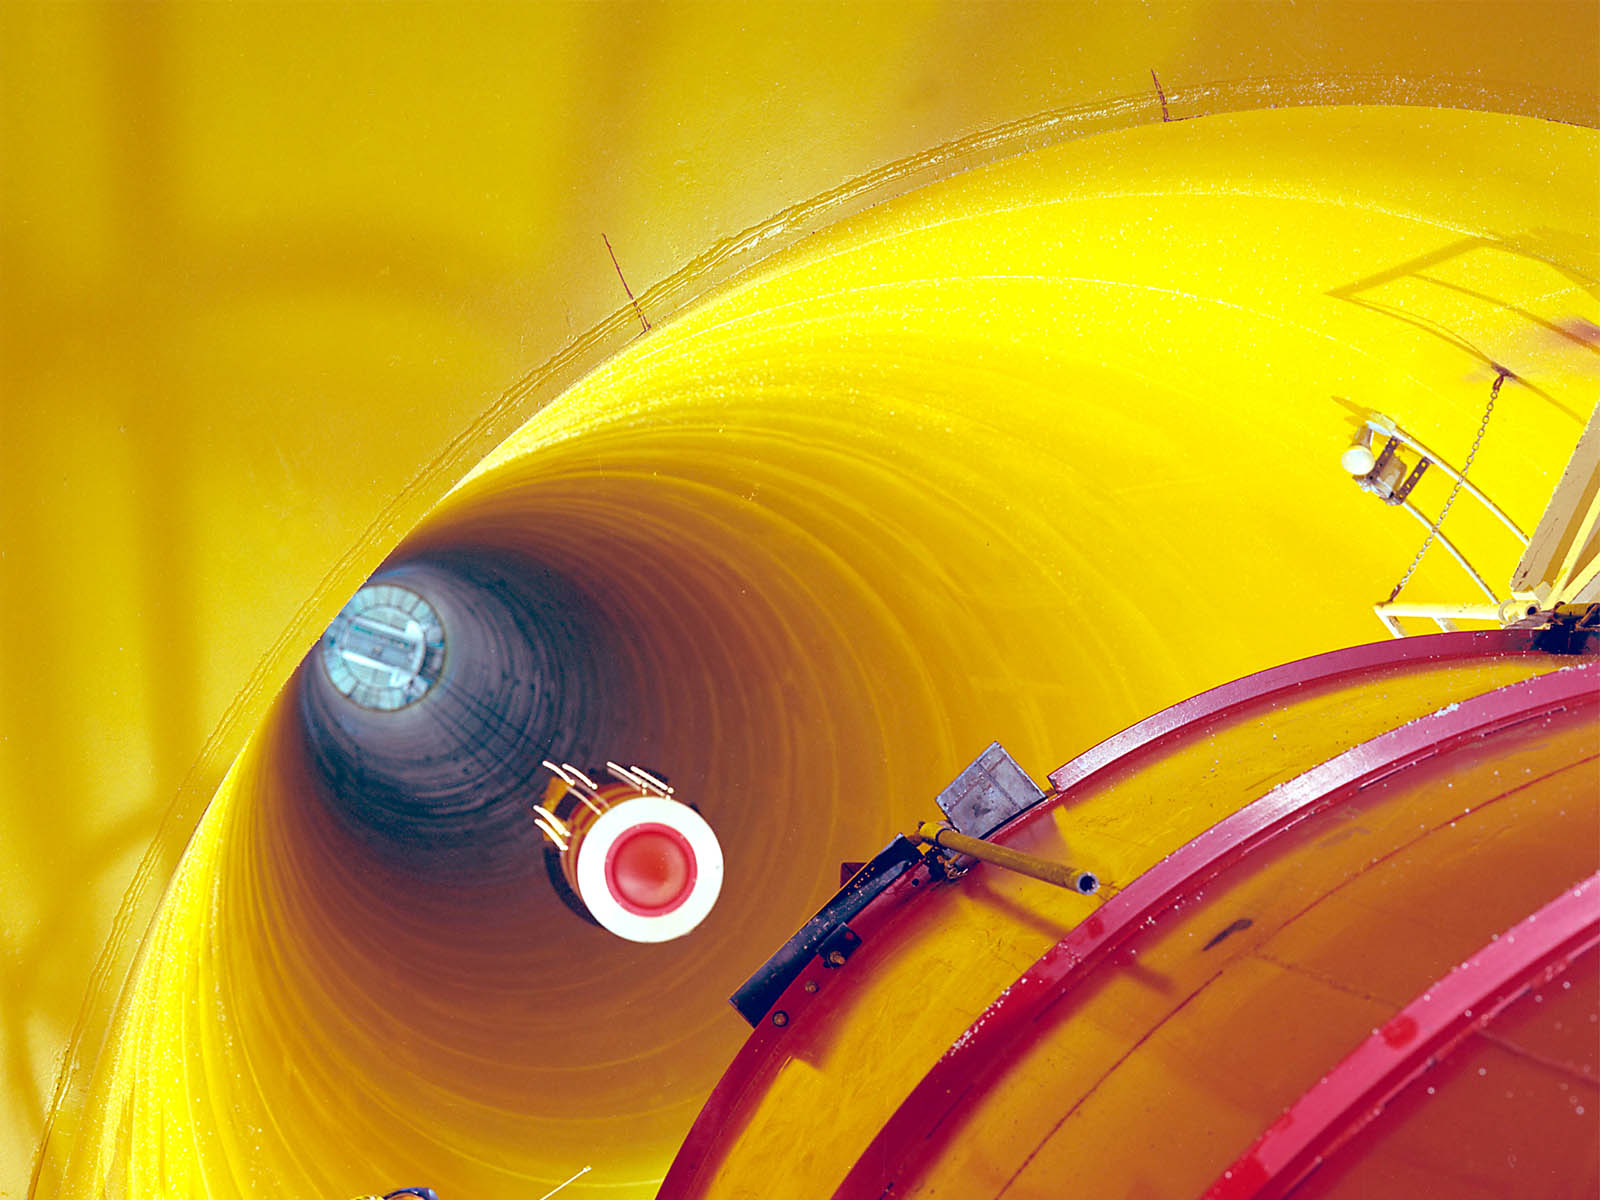 yellow-tube Wallpaper